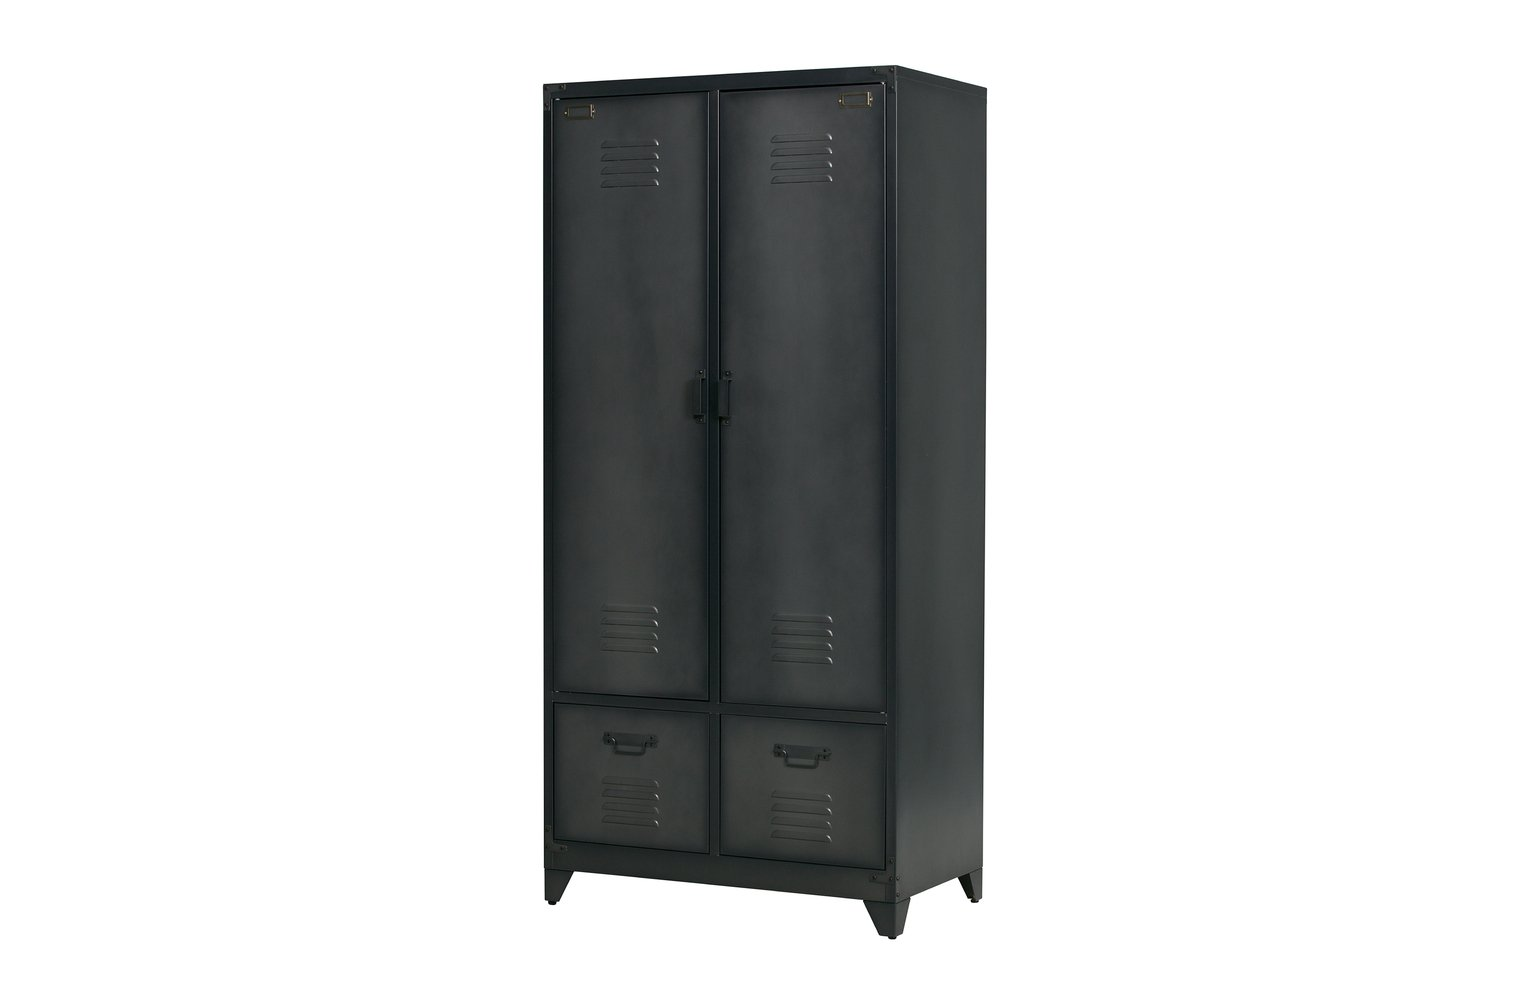 Woood Cas Black 2 Door 2 Drawer Metal Wardrobe